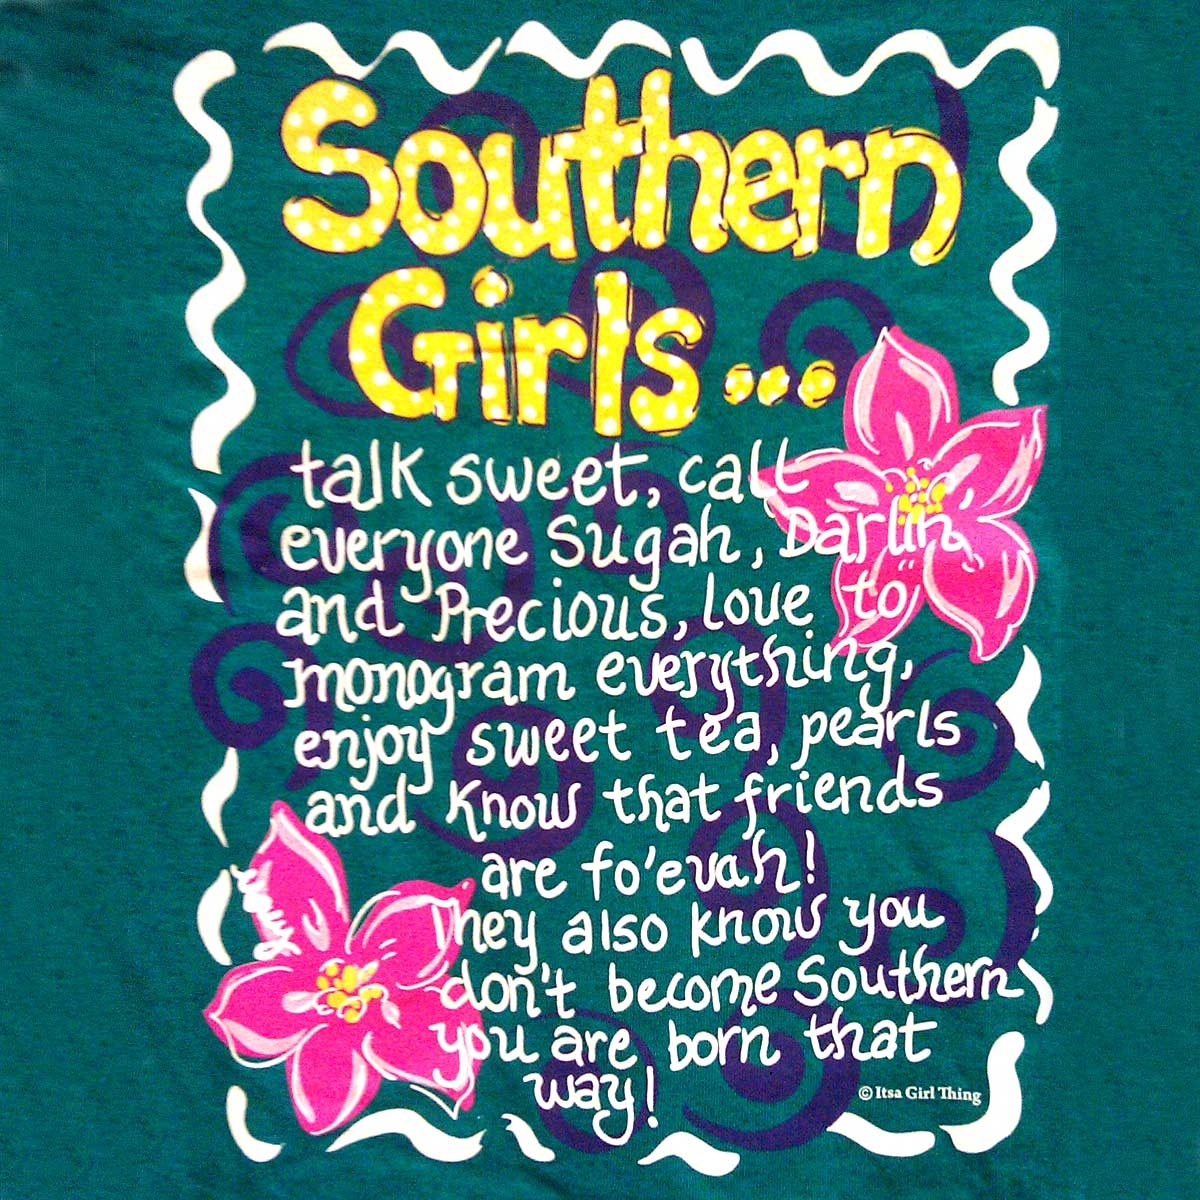 Southern Girl Quotes. QuotesGram